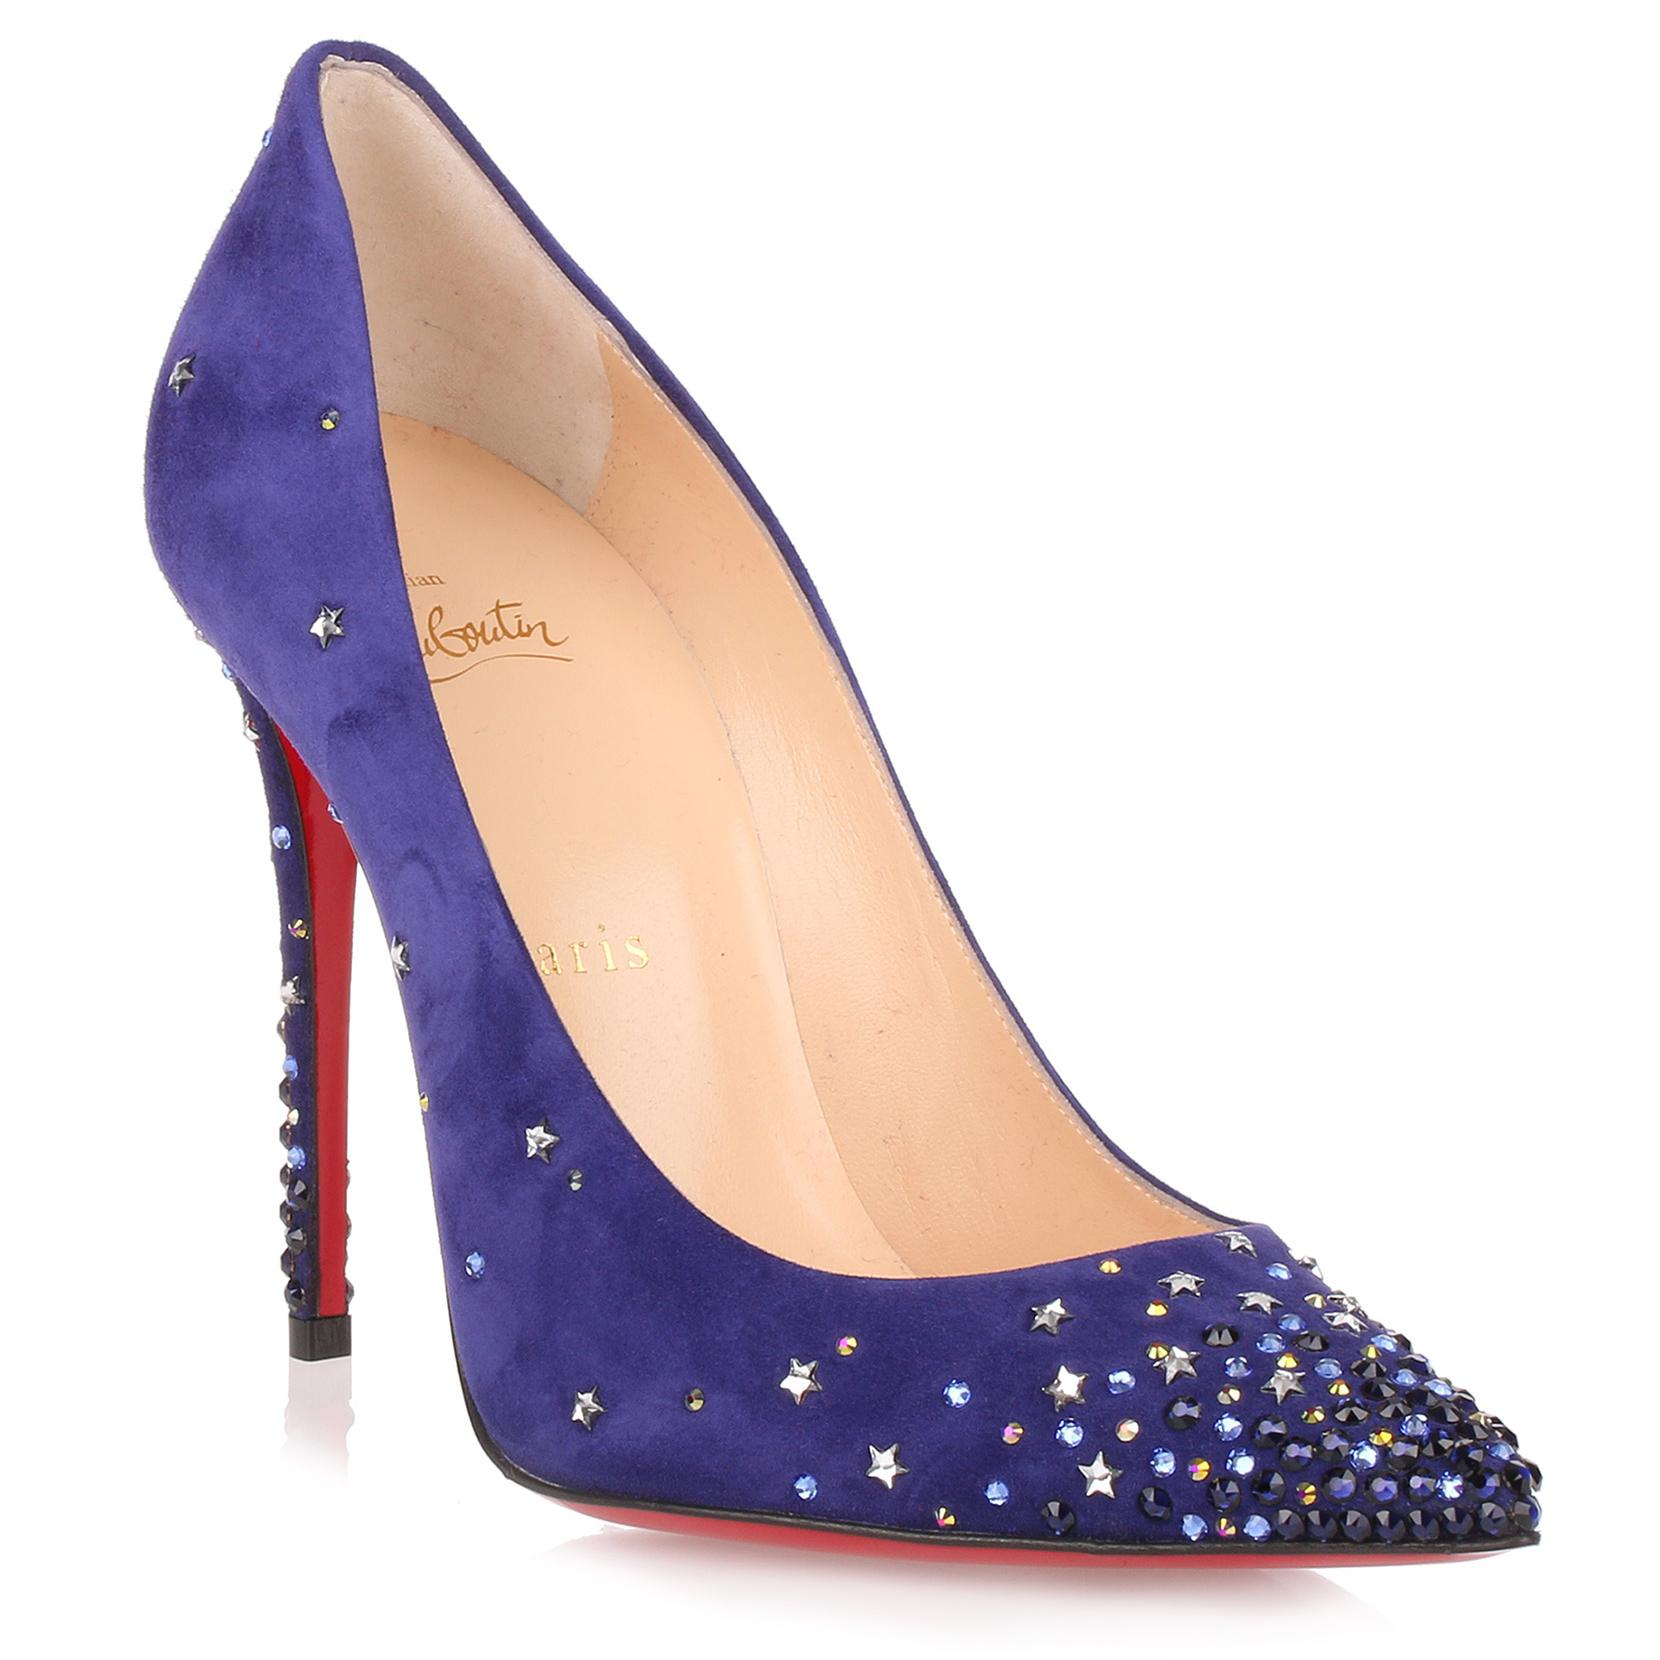 detailed look d15ef 0e052 Gravitanita 100 Purple Suede Pump